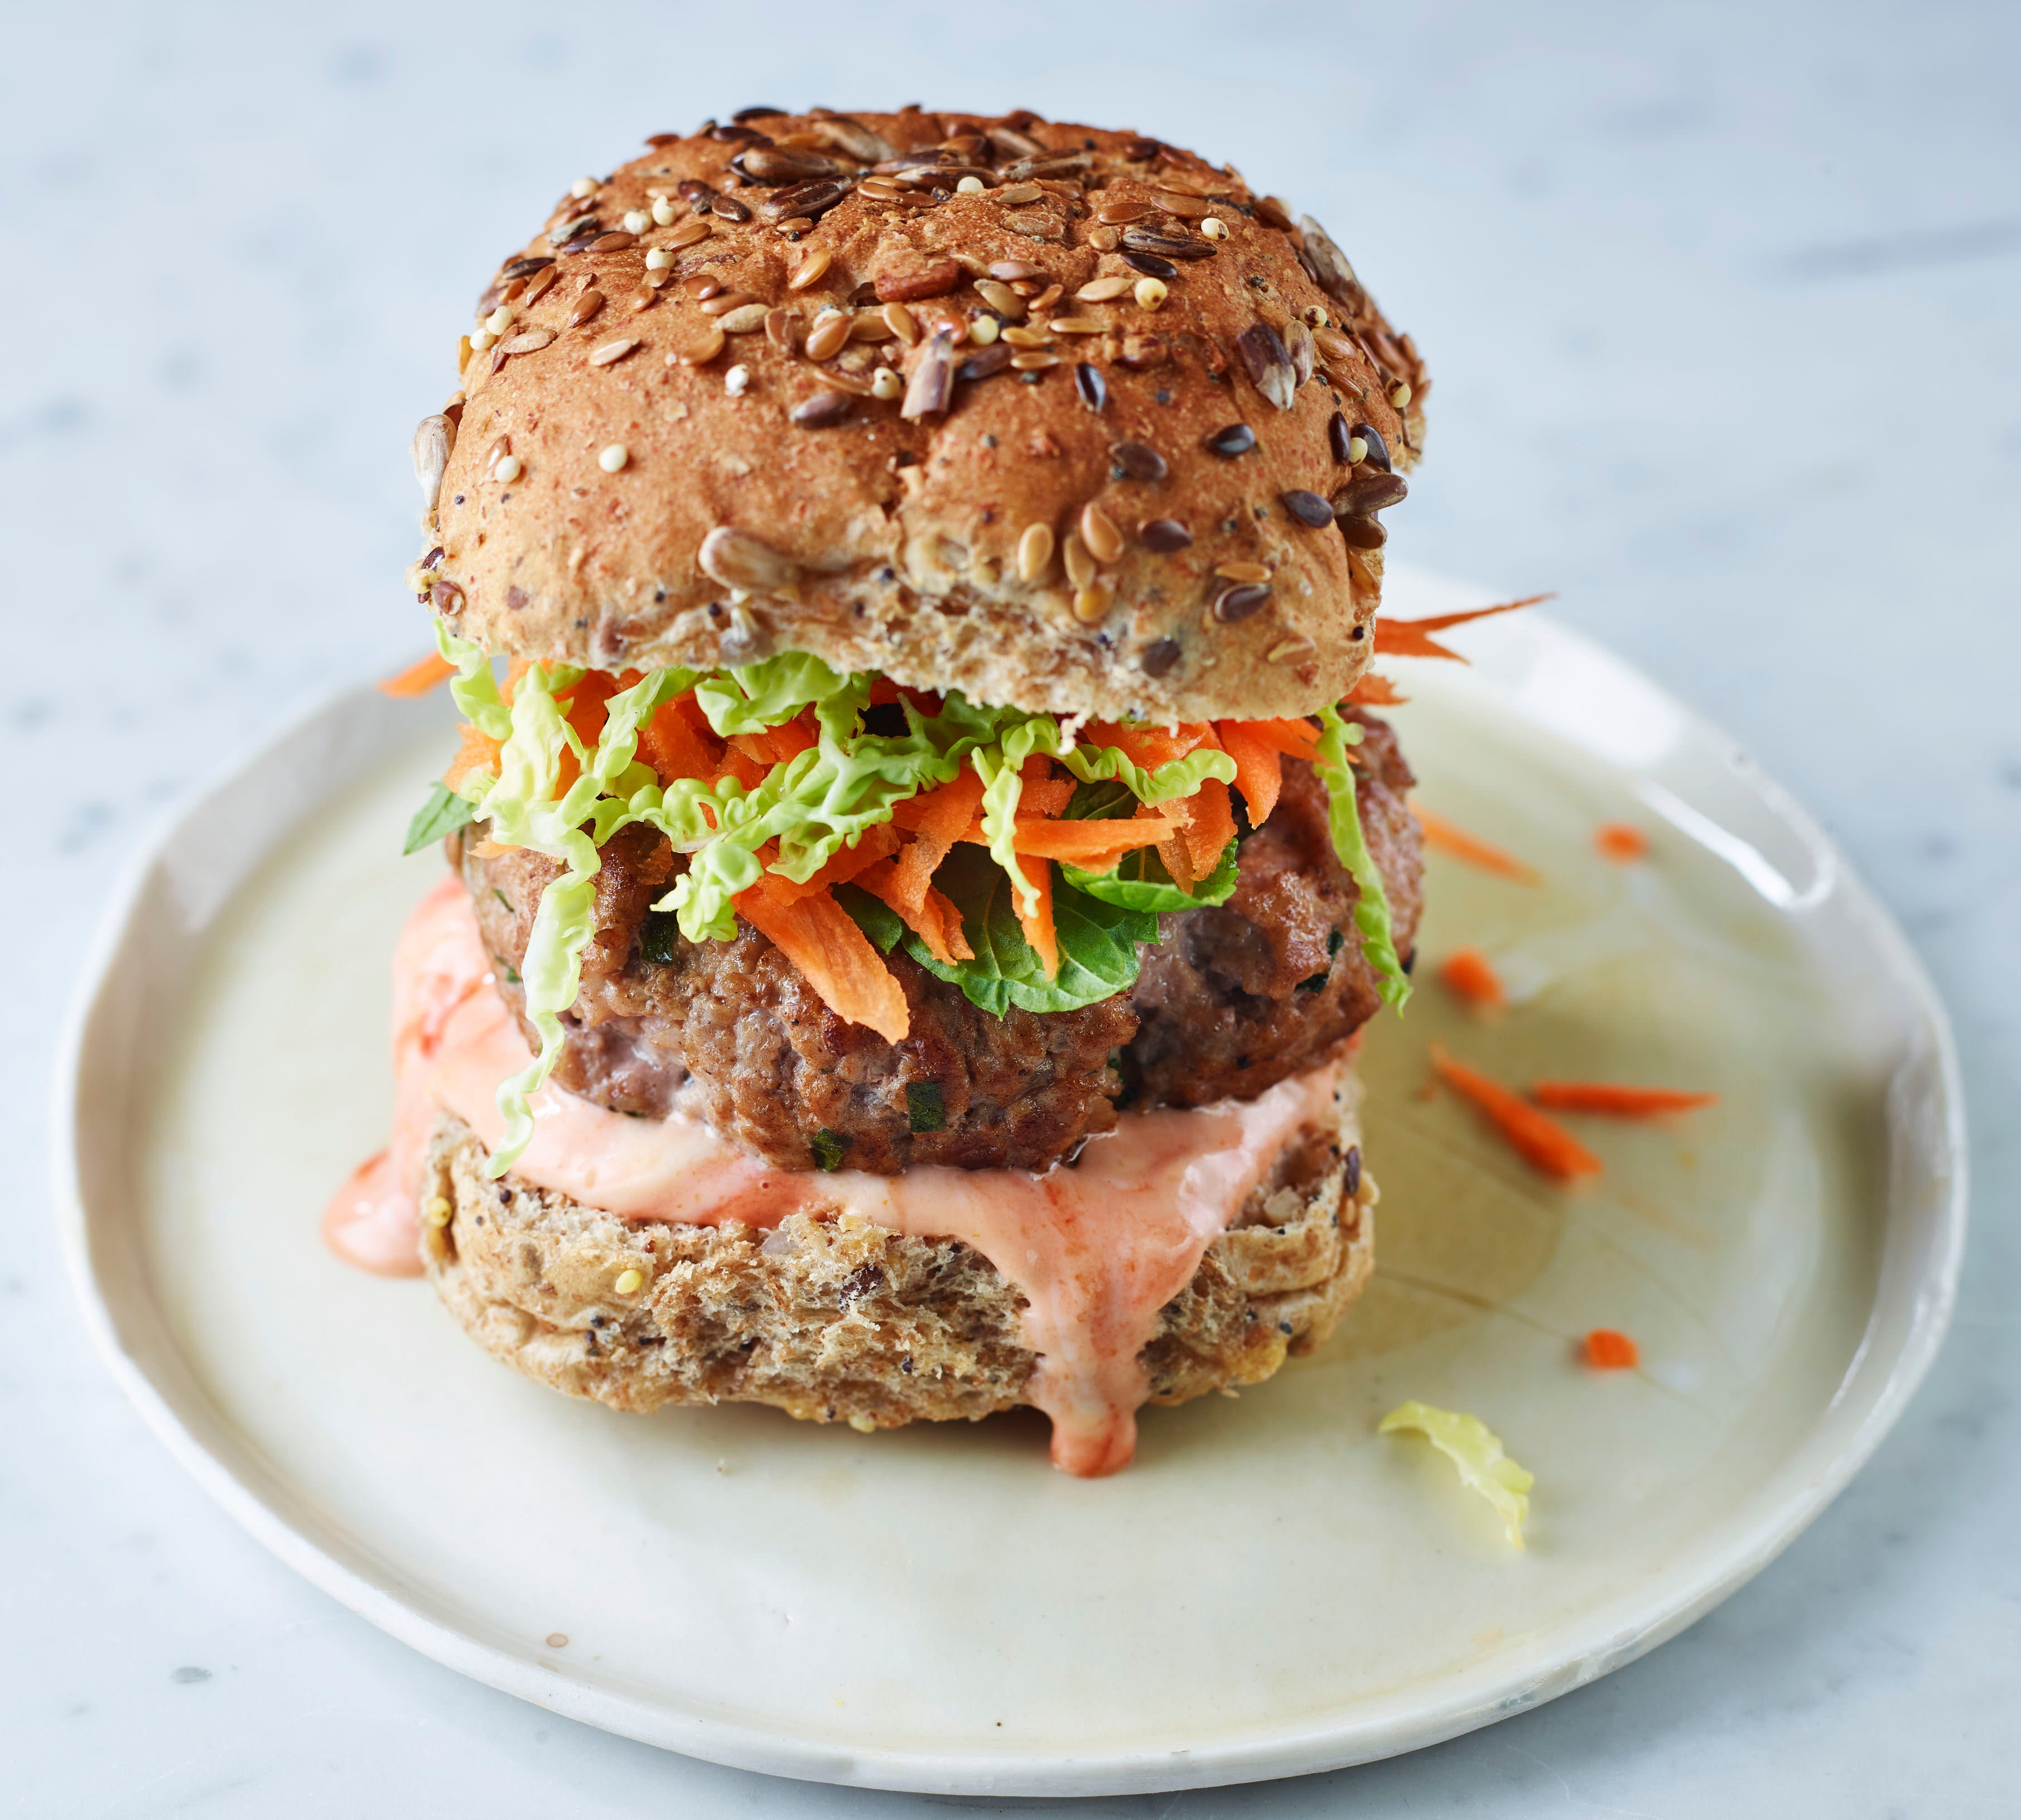 Photo of Thai-style burger by WW